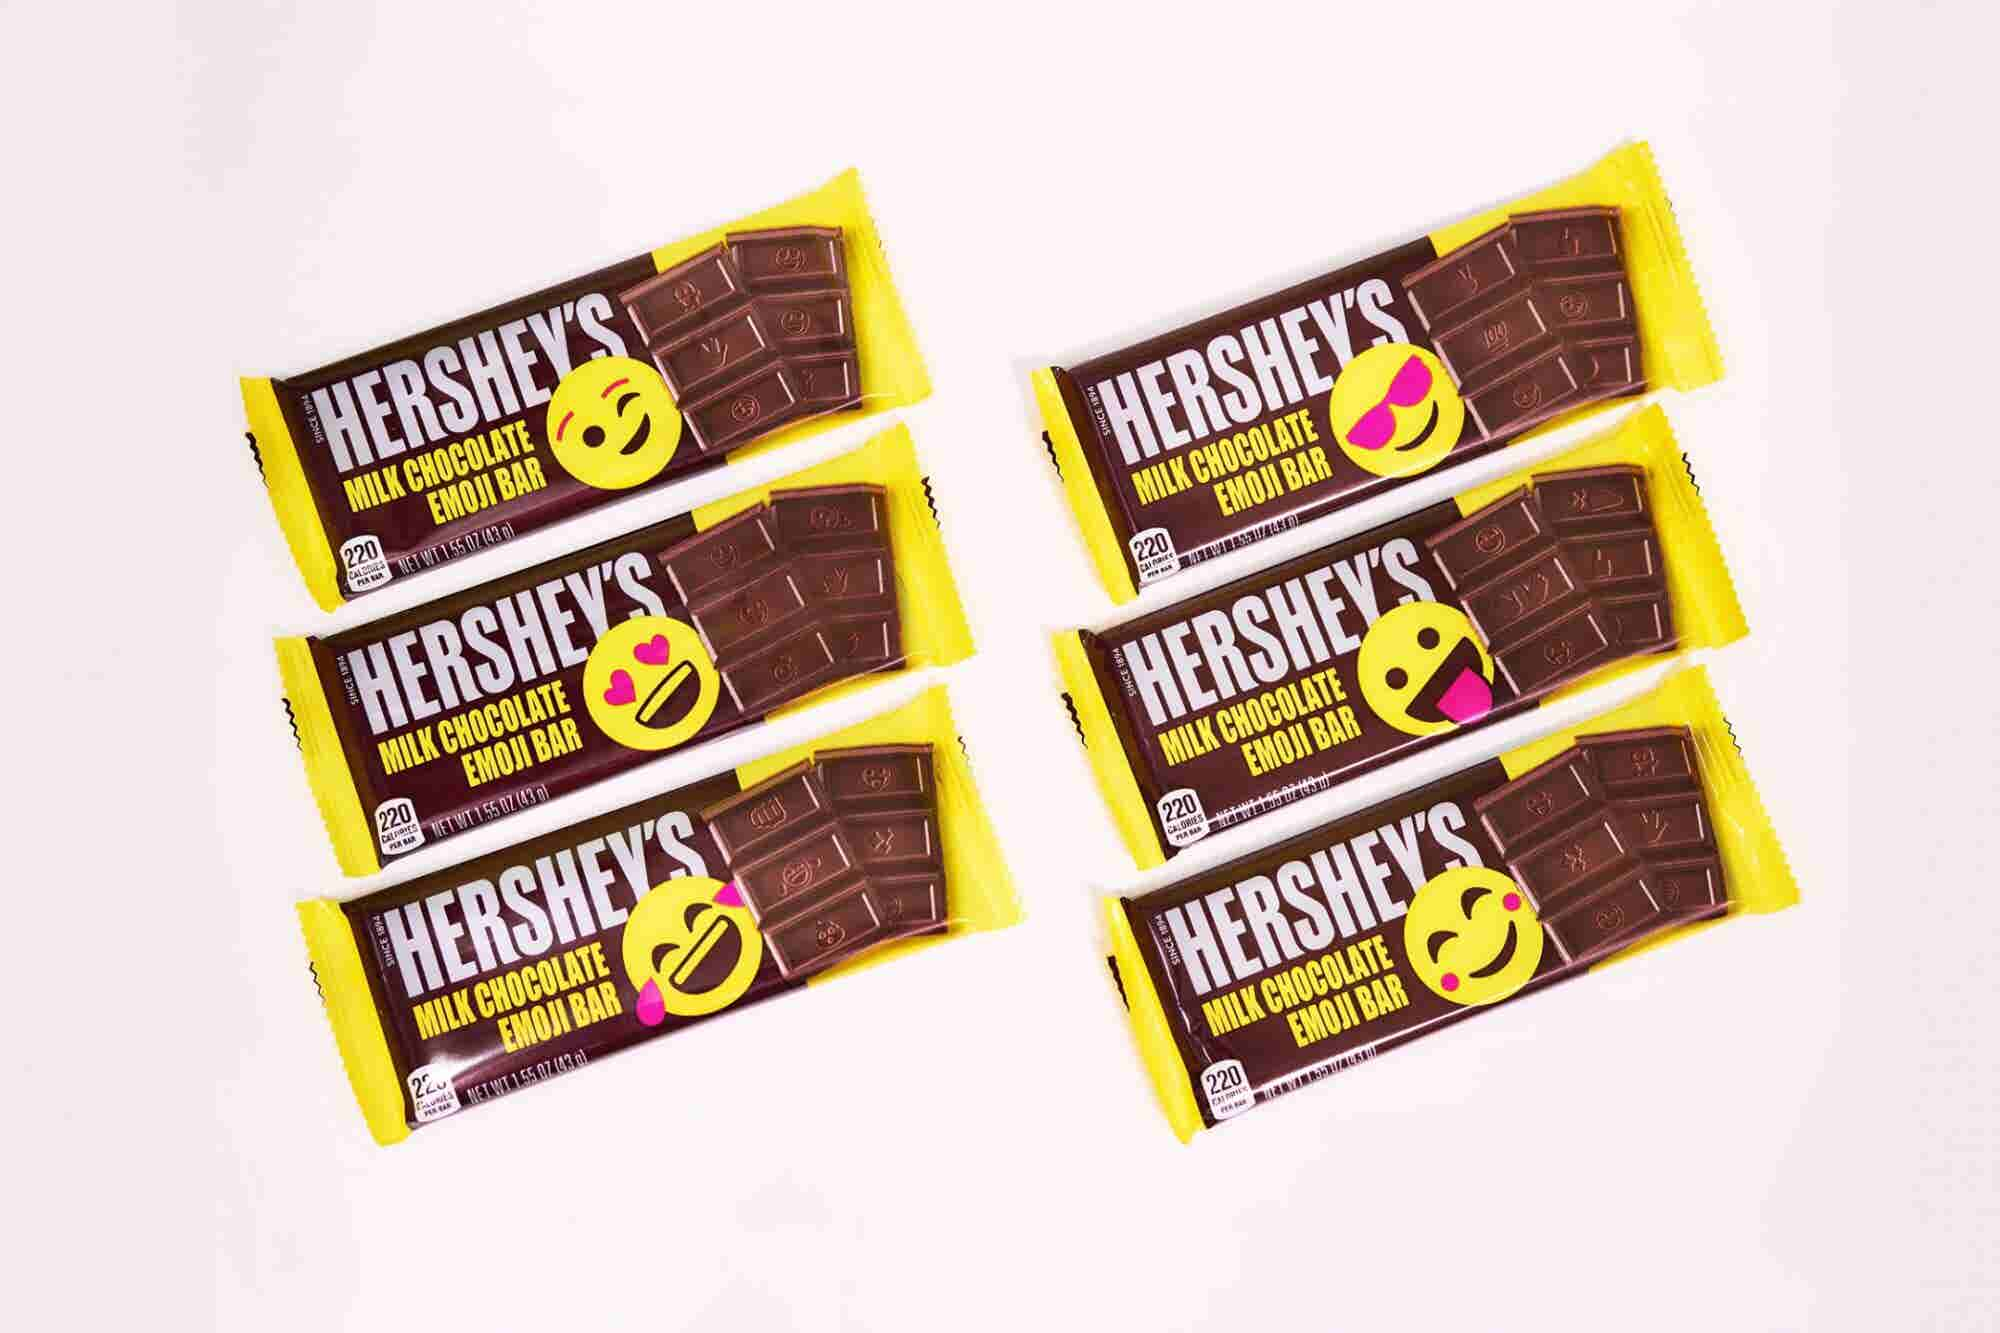 Hershey's Is Changing the Design of Its Iconic Chocolate Bars for the First Time Ever by Adding Emoji